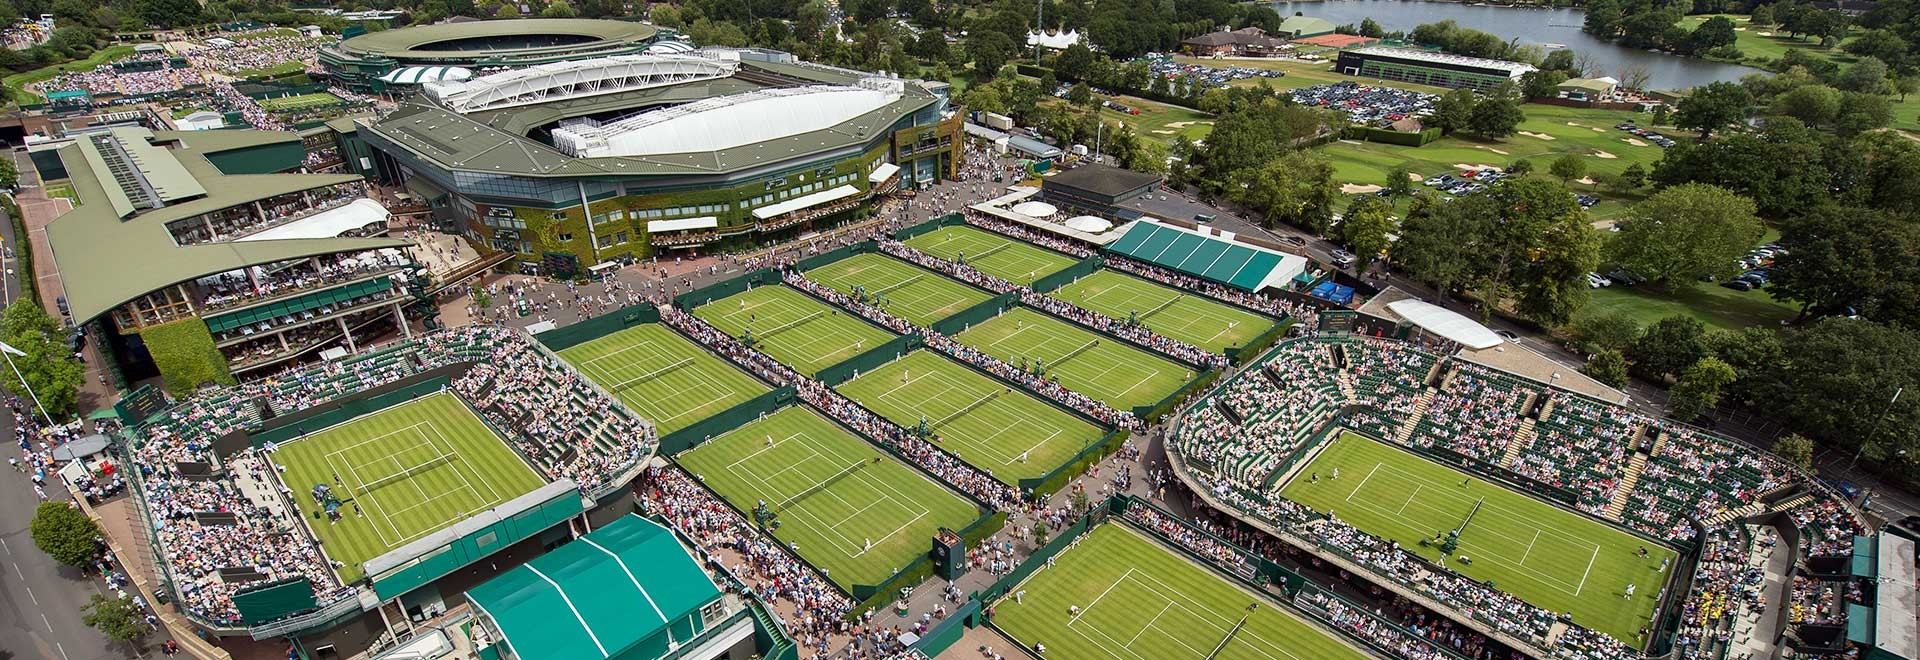 Wimbledon 2017: Tennis Packages - The Championships, Wimbledon